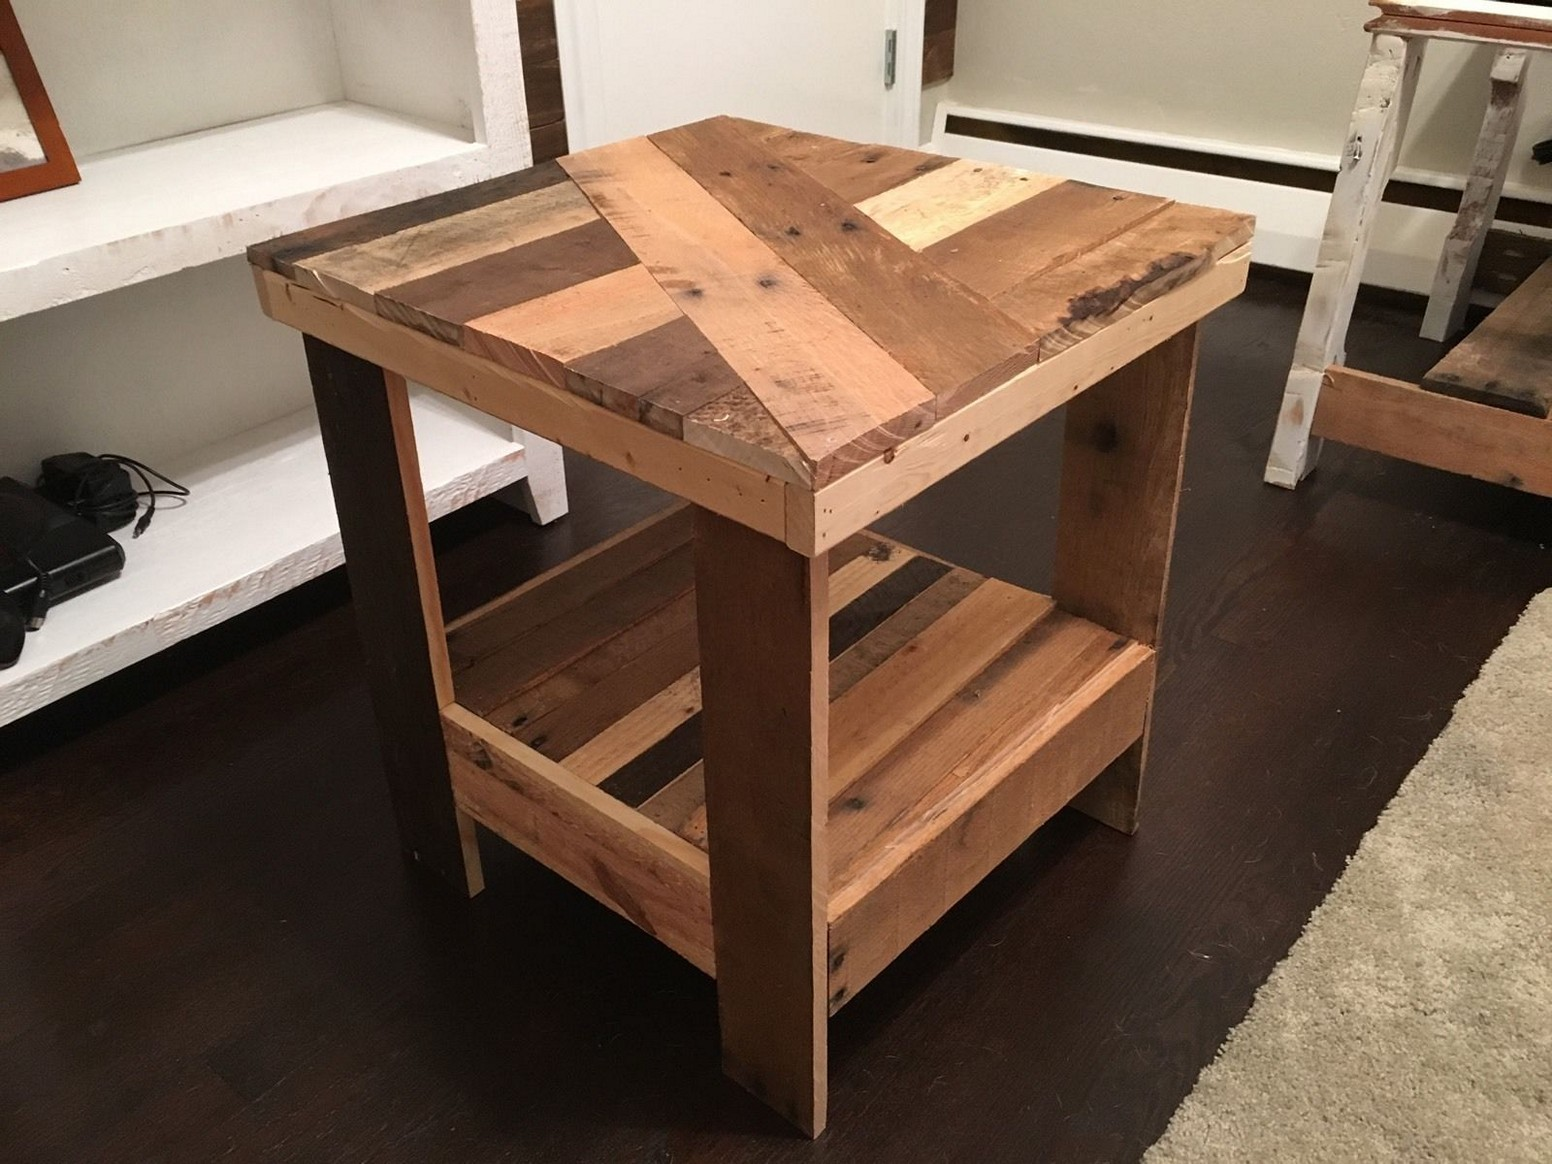 end table ideas genegdansk simple home pretty round diy starrkingschool plans outdoor furniture swing magnolia bedroom window side sofa imported coffee tables tall chairside